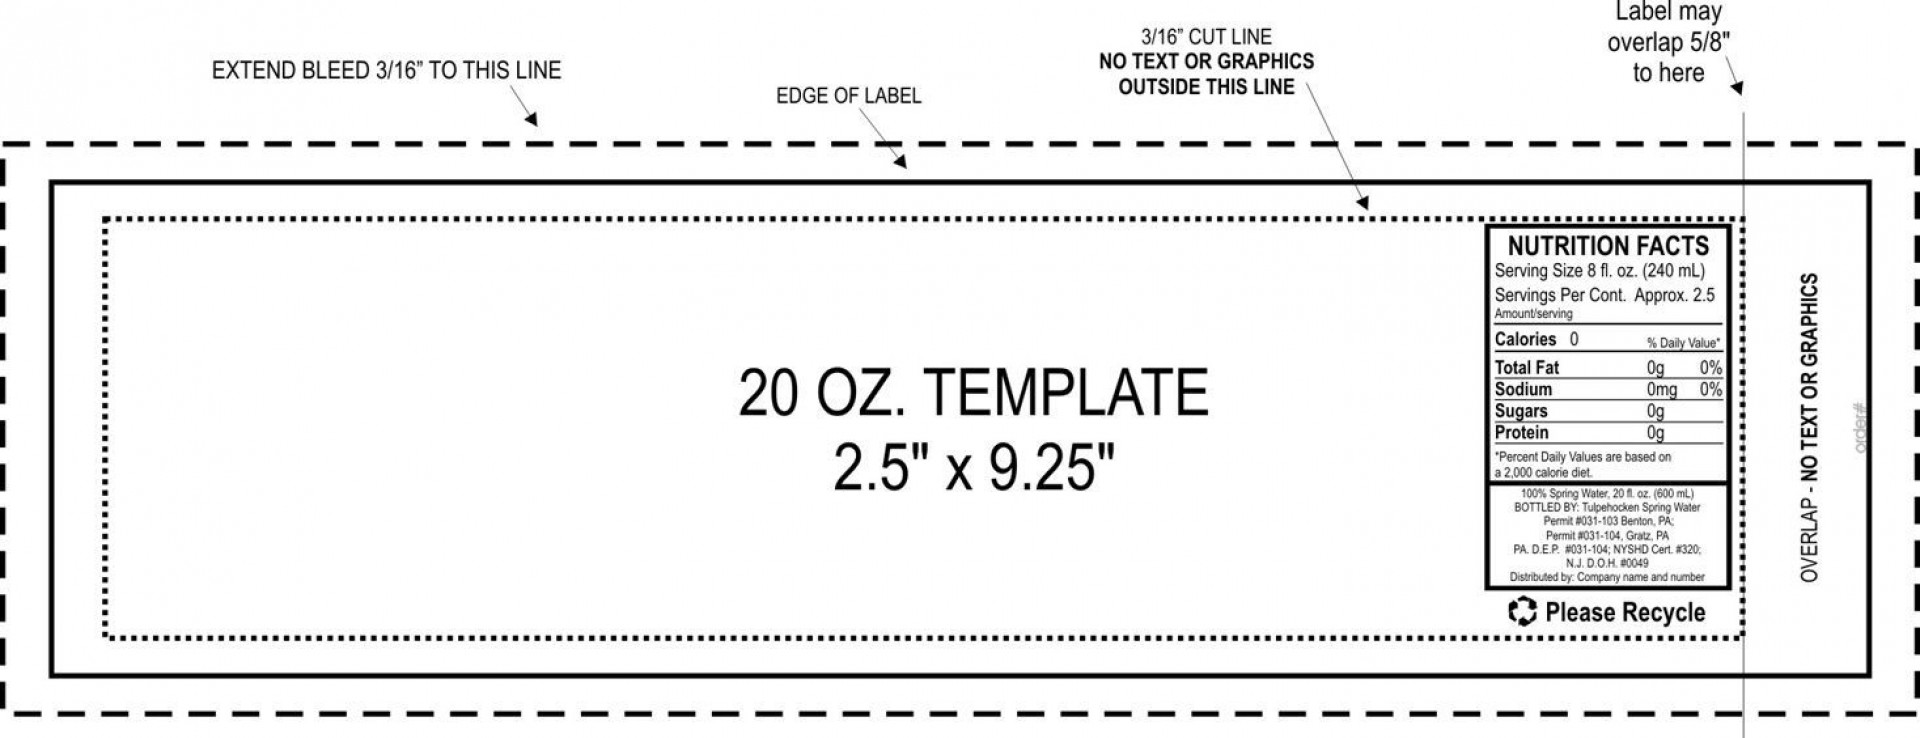 003 Exceptional Diy Water Bottle Label Template Free High Resolution 1920